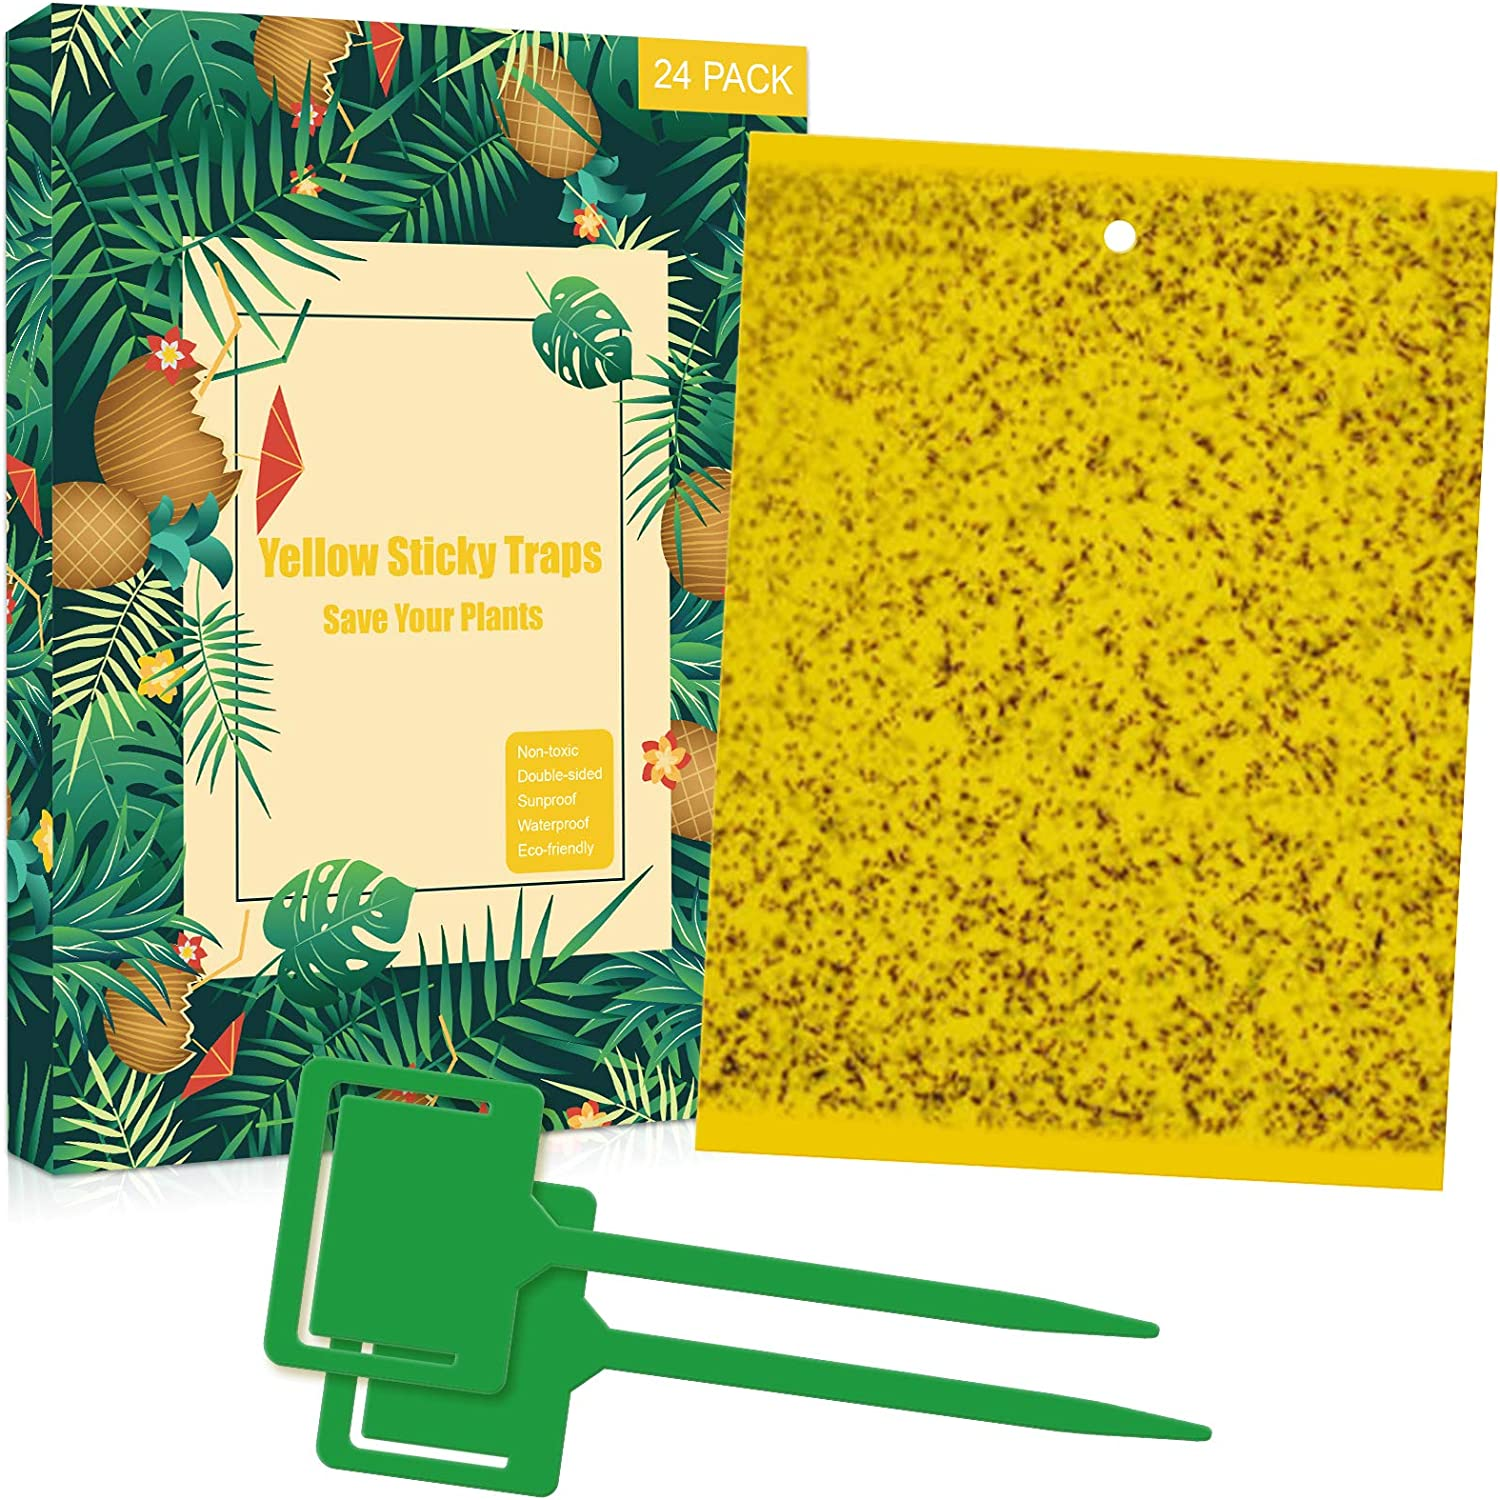 24 Sheets Dual-Sided Yellow Sticky Traps for Natural Pest Control, Fruit Fly Traps Indoor / Outdoor with Twist Ties & Holders, Yellow Fungus Gnat Traps for Whitefly, Thrips, Aphids, Flying Insects